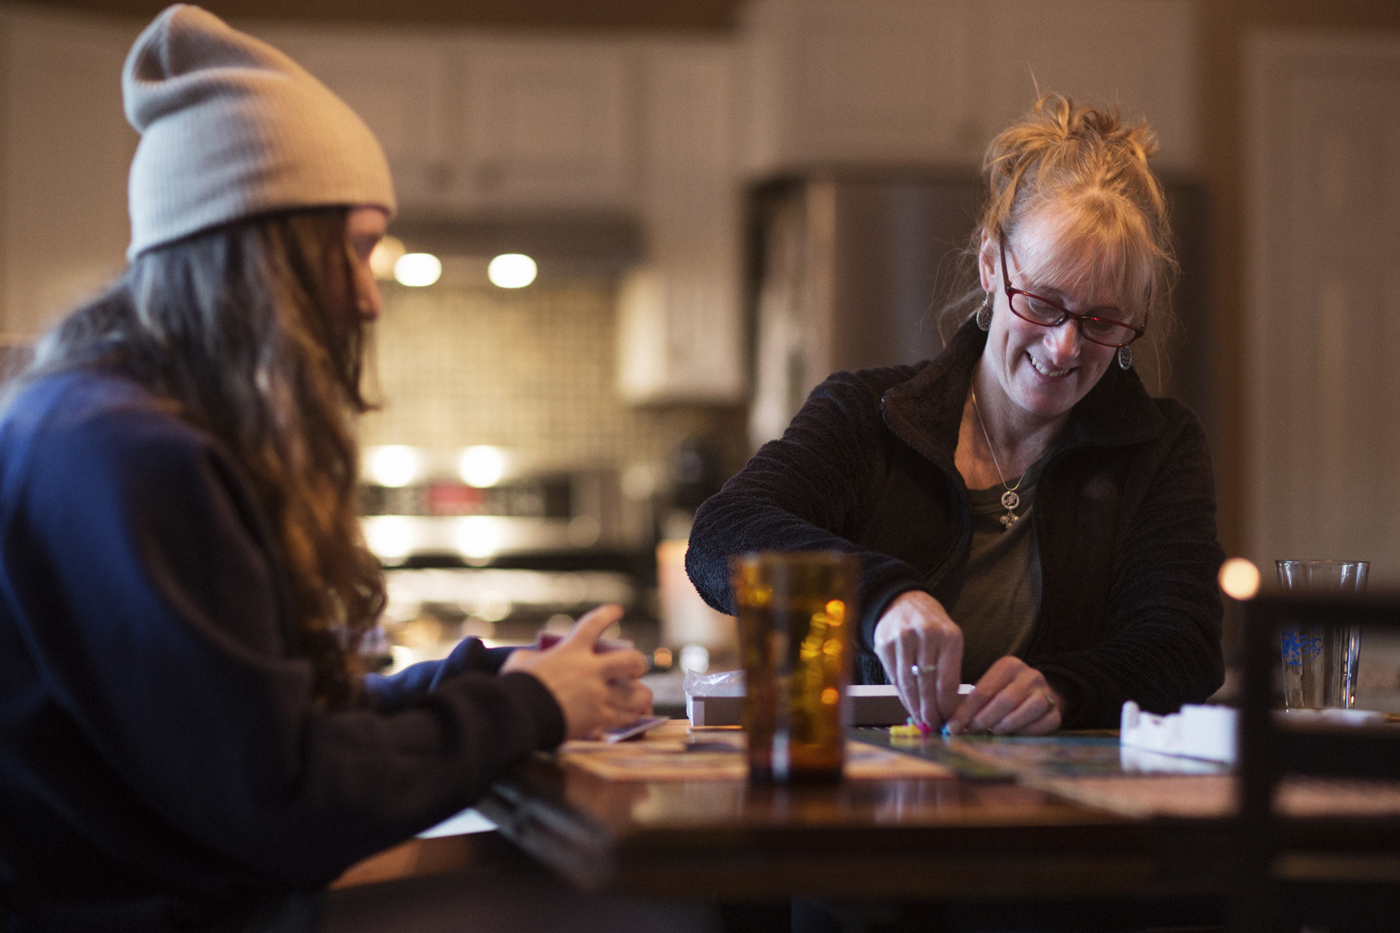 Faith and her daughter play a board game on the kitchen table.